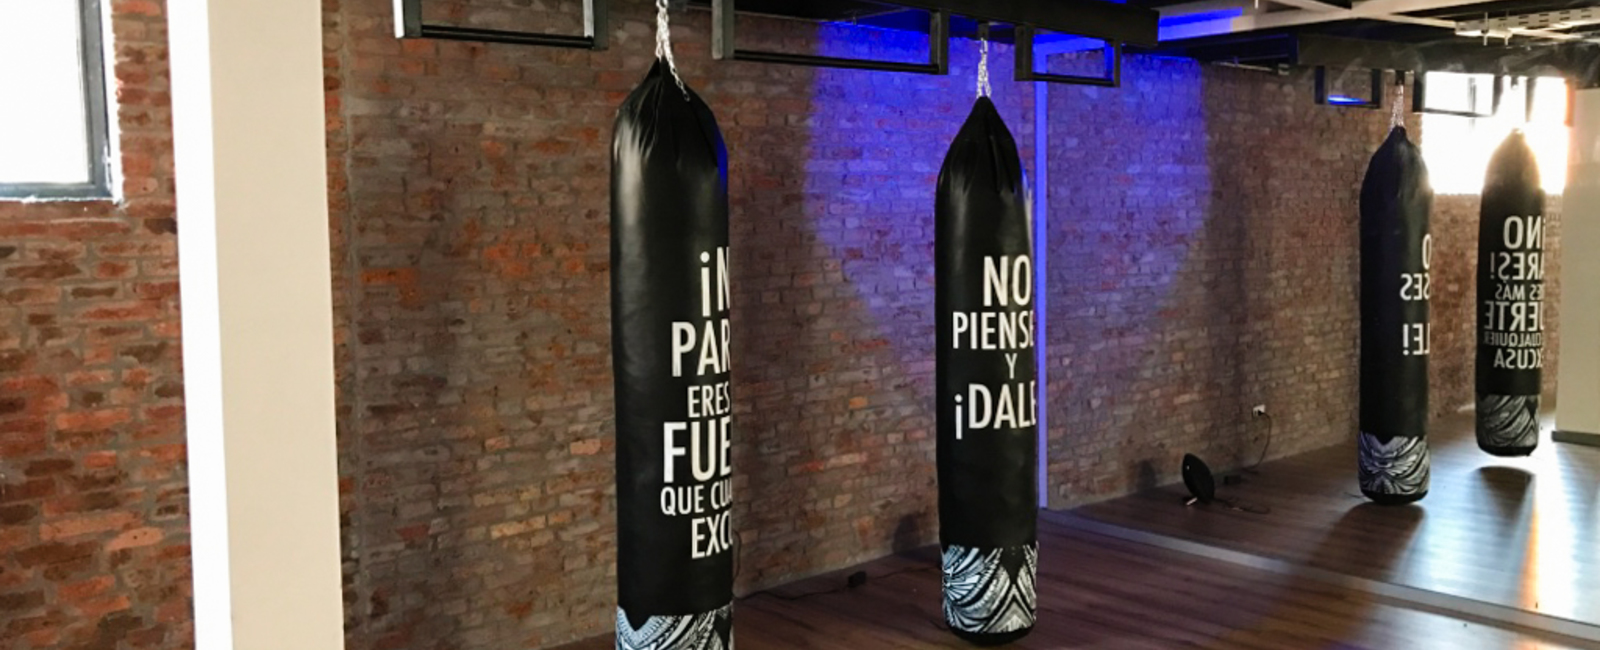 Pichara rios arquitectos gimnasio ko urban detox center chile estilo industrial bronx sala kick boxing puching ball ladrillo ny piso flotante grafica blanco negro luces led